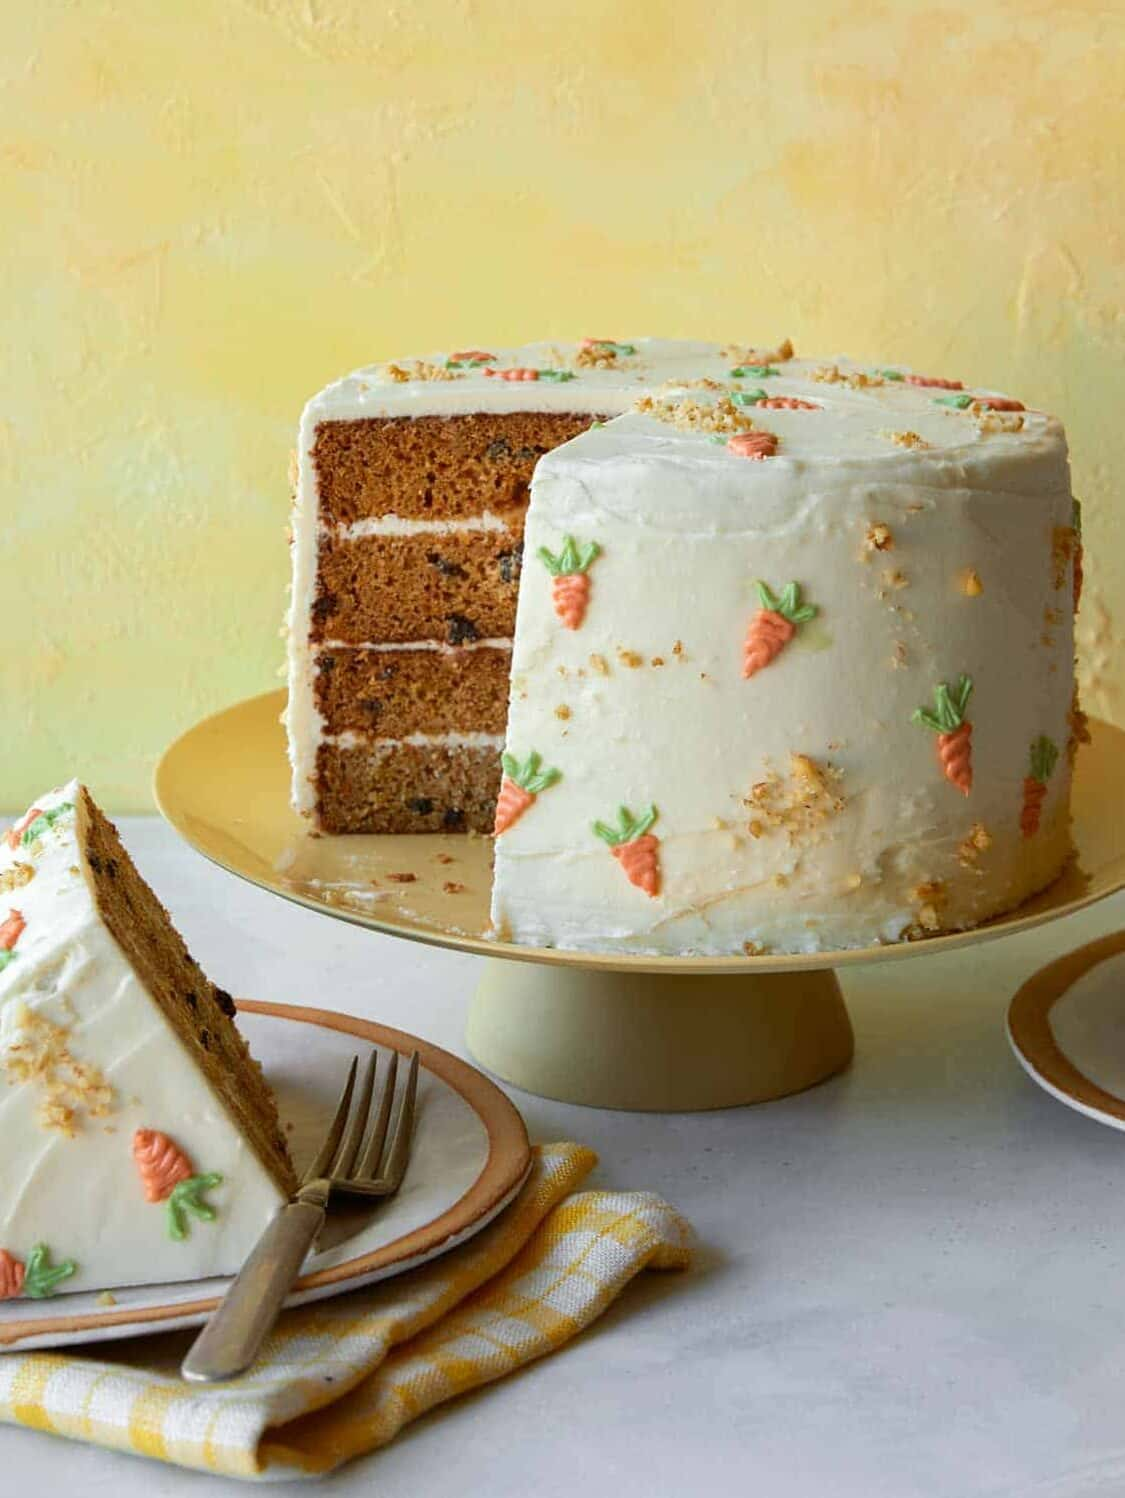 Carrot cake recipe on a cake stand with a slice out.